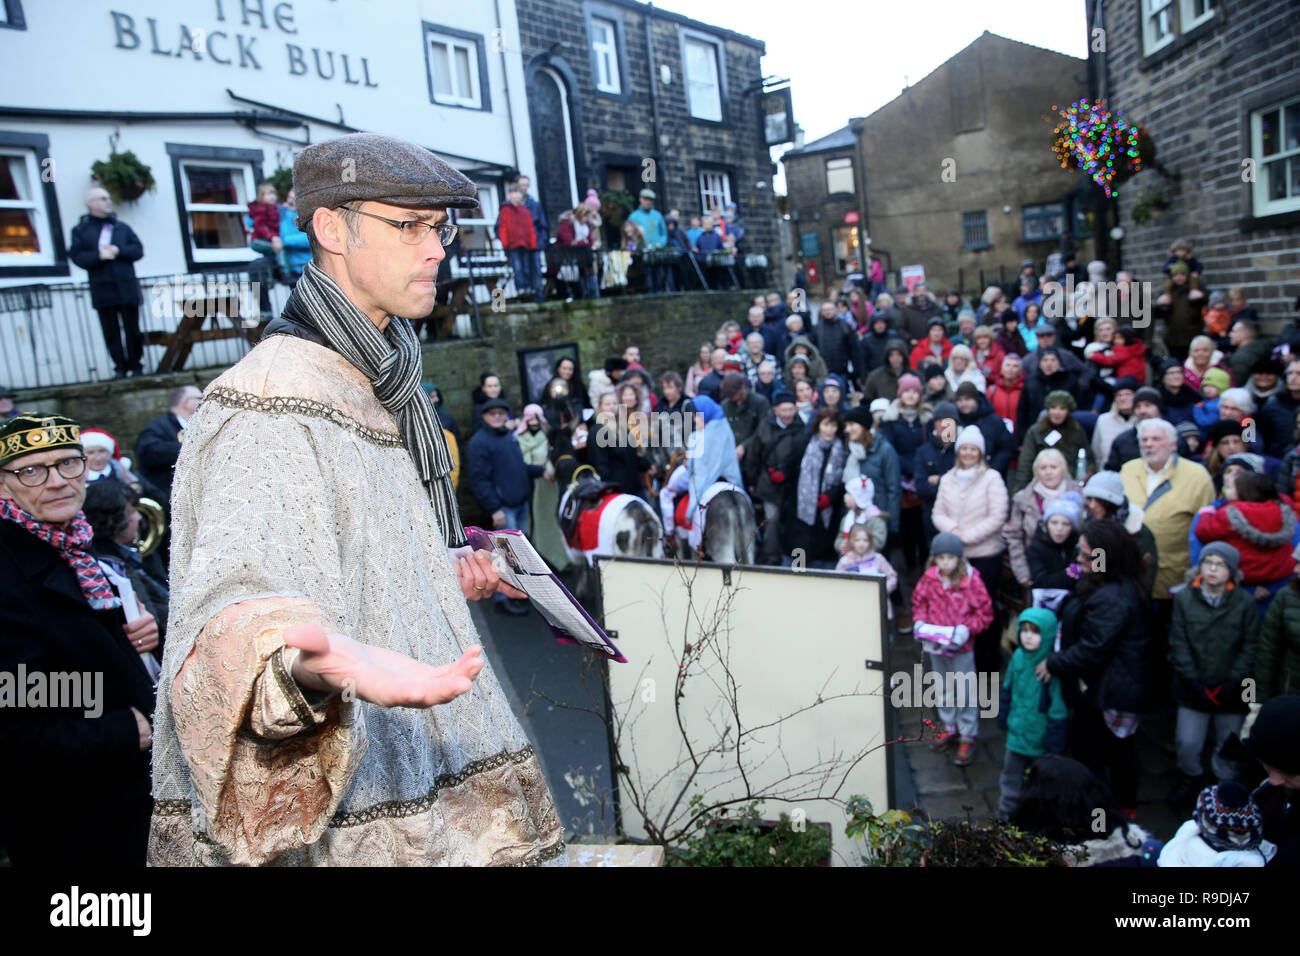 Haworth, Bradford, UK. 22nd Dec 2018. A traditional nativity re-enactment with children playing the parts of Mary and Joseph for the magical nativity procession through  Main Street.  Mary rides on a Donkey and Joseph knocks on the doors of local shops and Inns asking for a room for the night.  True to the narrative they are turned away with a 'no room at the Inn' reply.  A narrator guides the towns visitors through the story and a brass band provide backing for the singing of carols.  Haworth,Bradford, UK, 22nd December 2018 (C)Barbara Cook/Alamy Live News Credit: Barbara Cook/Alamy Live News - Stock Image